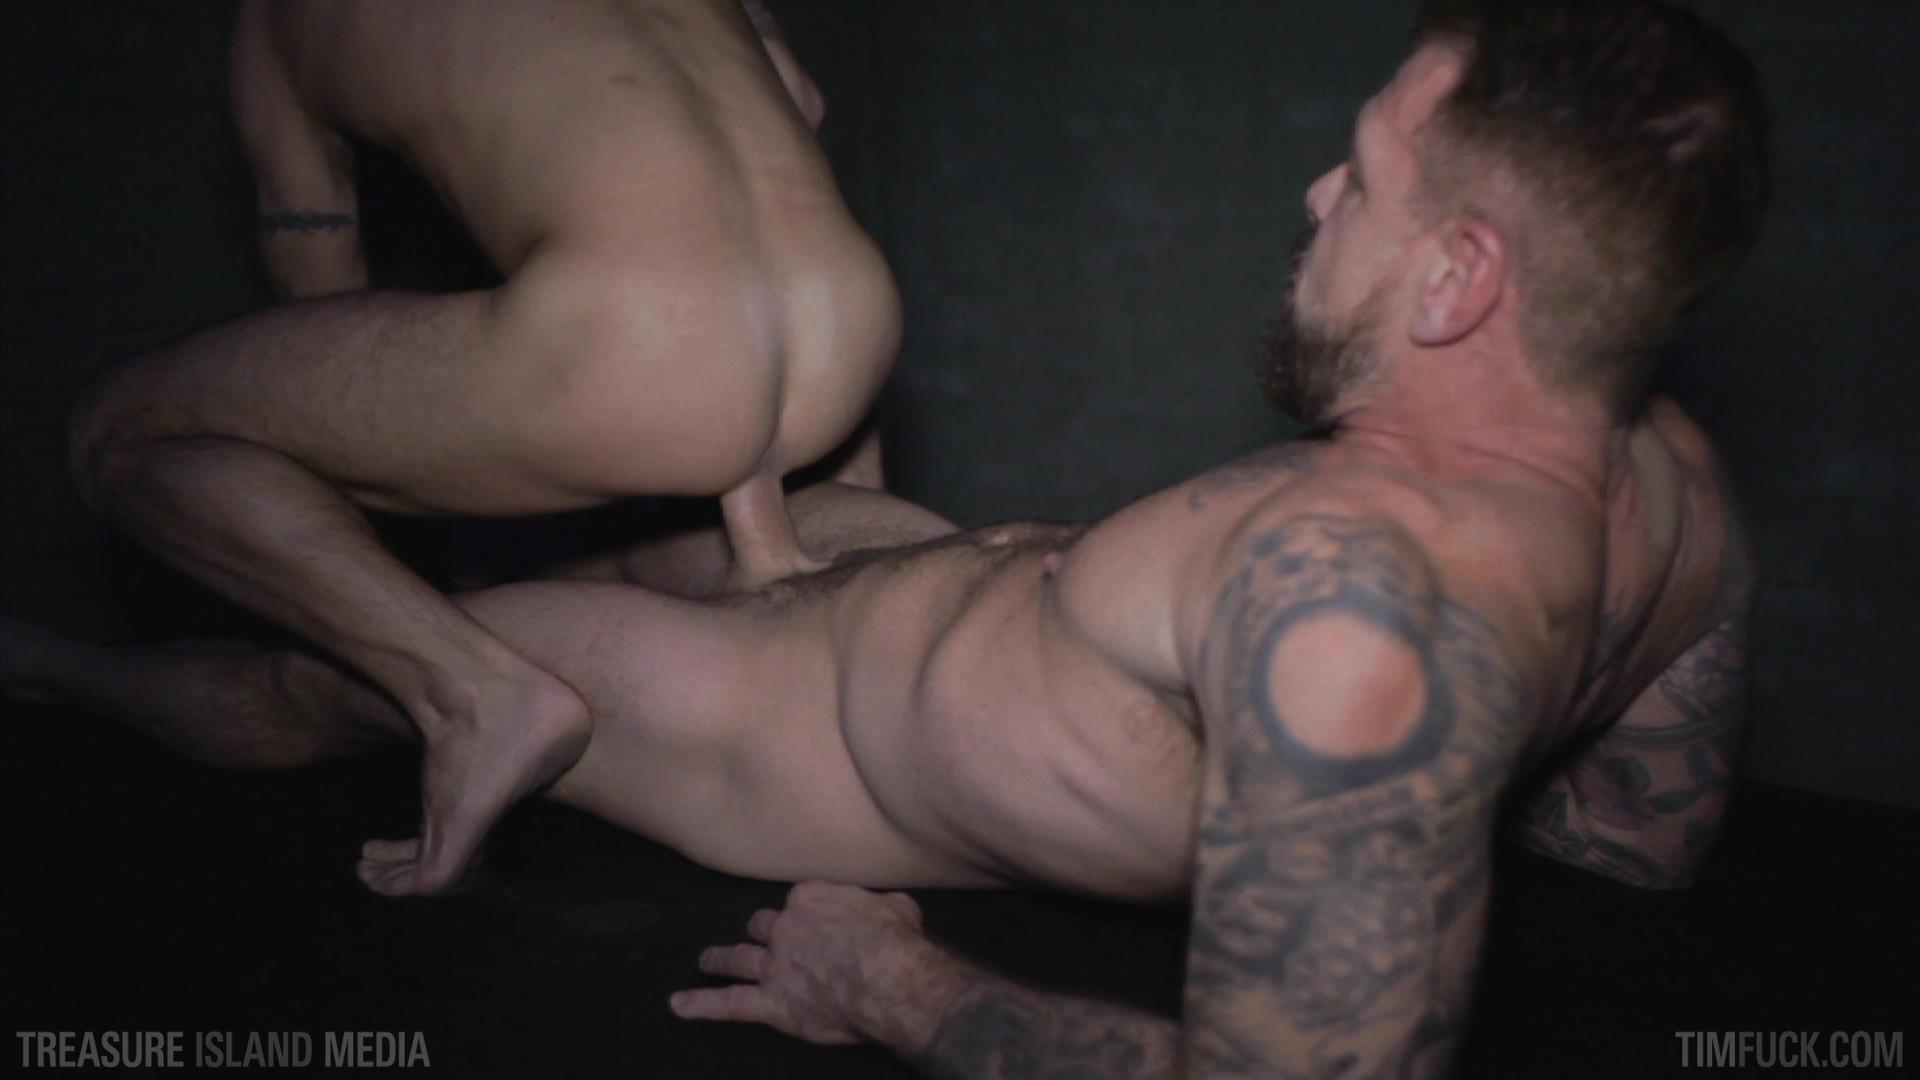 Treasure Island Media TimFuck Rocco Steele and Ben Statham Bareback Amateur Gay Porn 16 Treasure Island Media: Rocco Steele and Ben Statham Bareback In A London Bathhouse